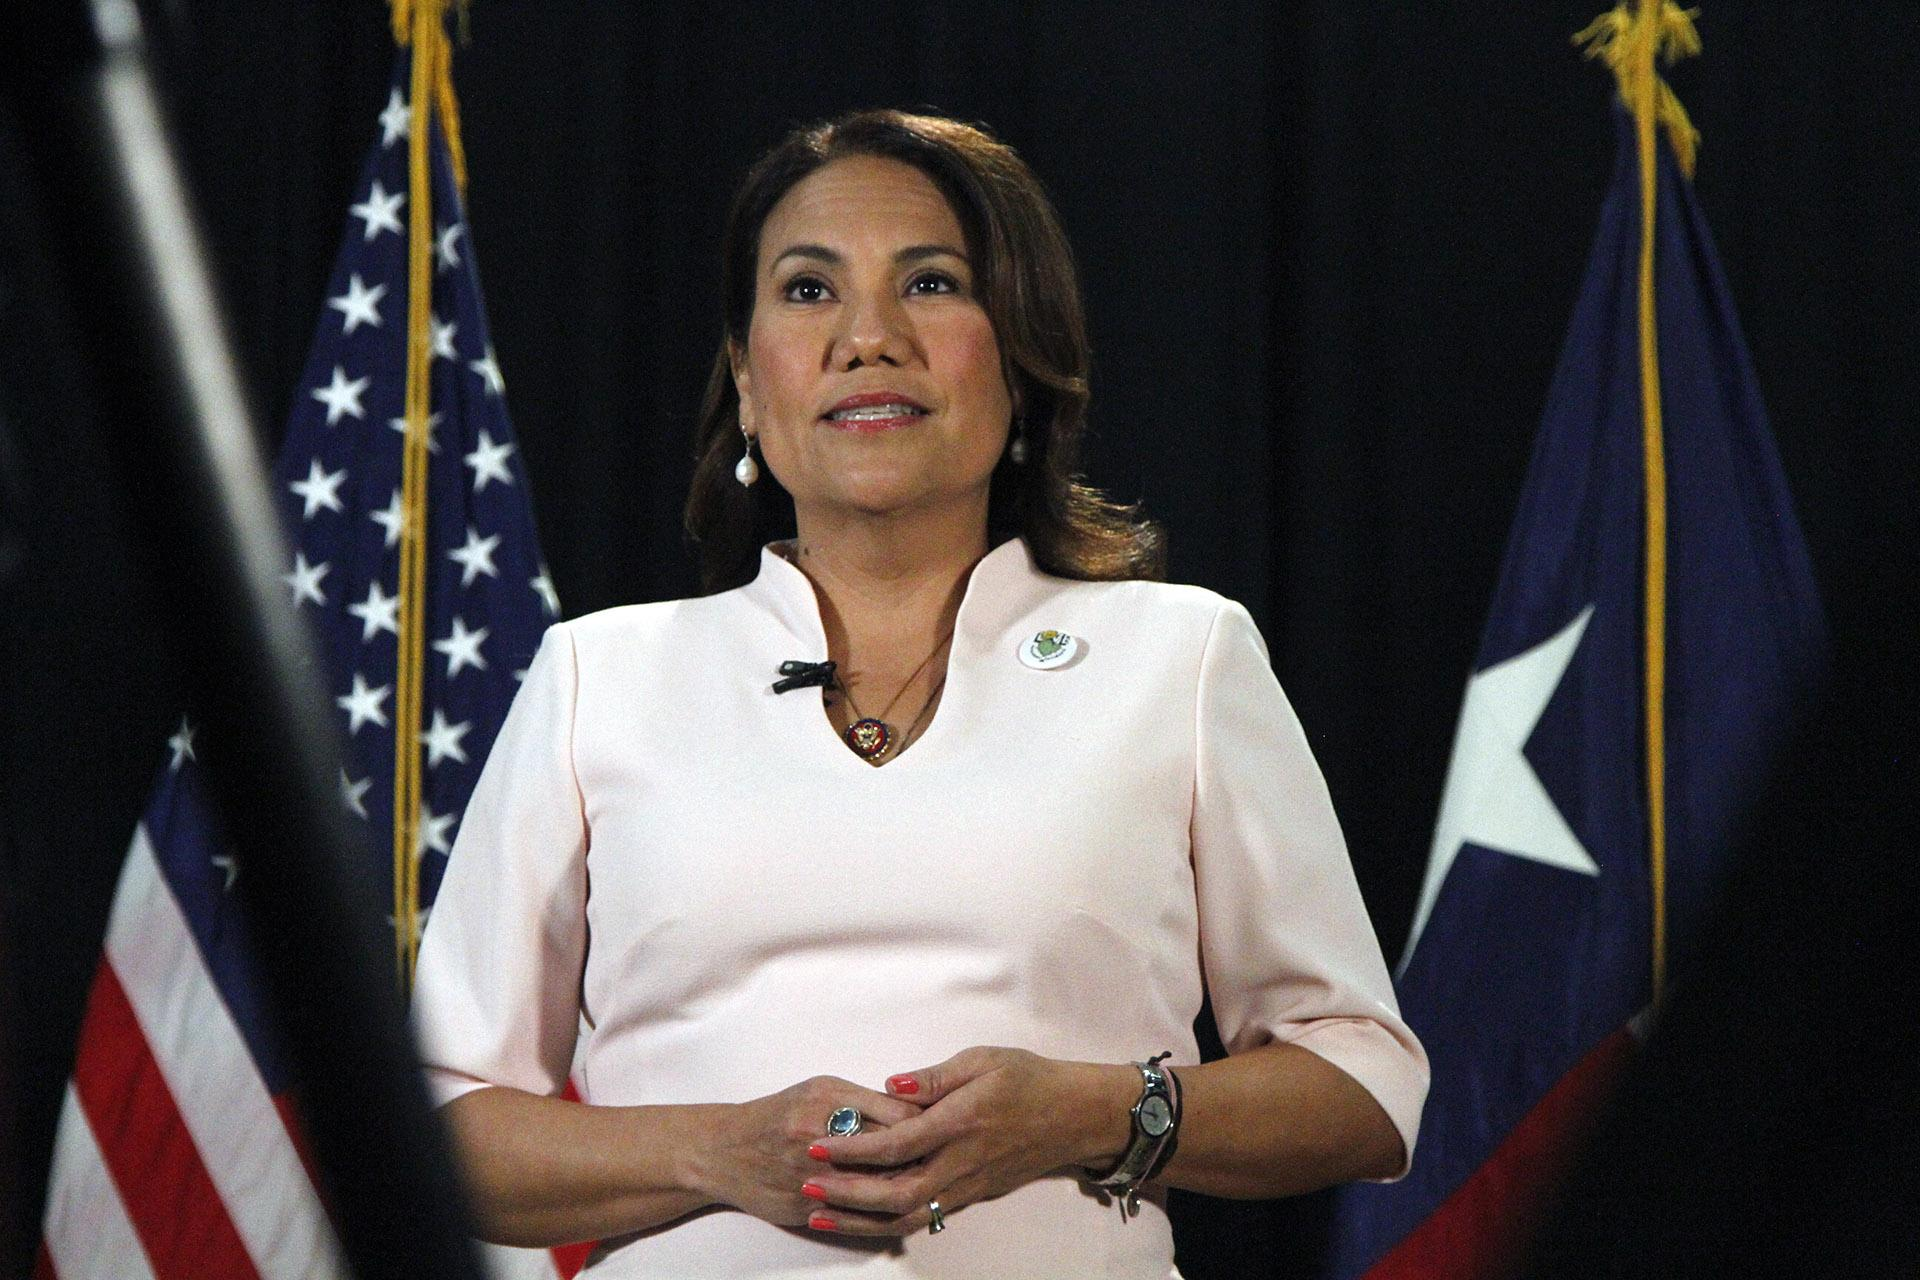 Rep. Veronica Escobar, D-Texas, speaks as she records a Spanish-language response to President Donald Trump's State of the Union address on Tuesday, Feb. 4, 2020, in El Paso, Texas. (AP Photo / Cedar Attanasio)